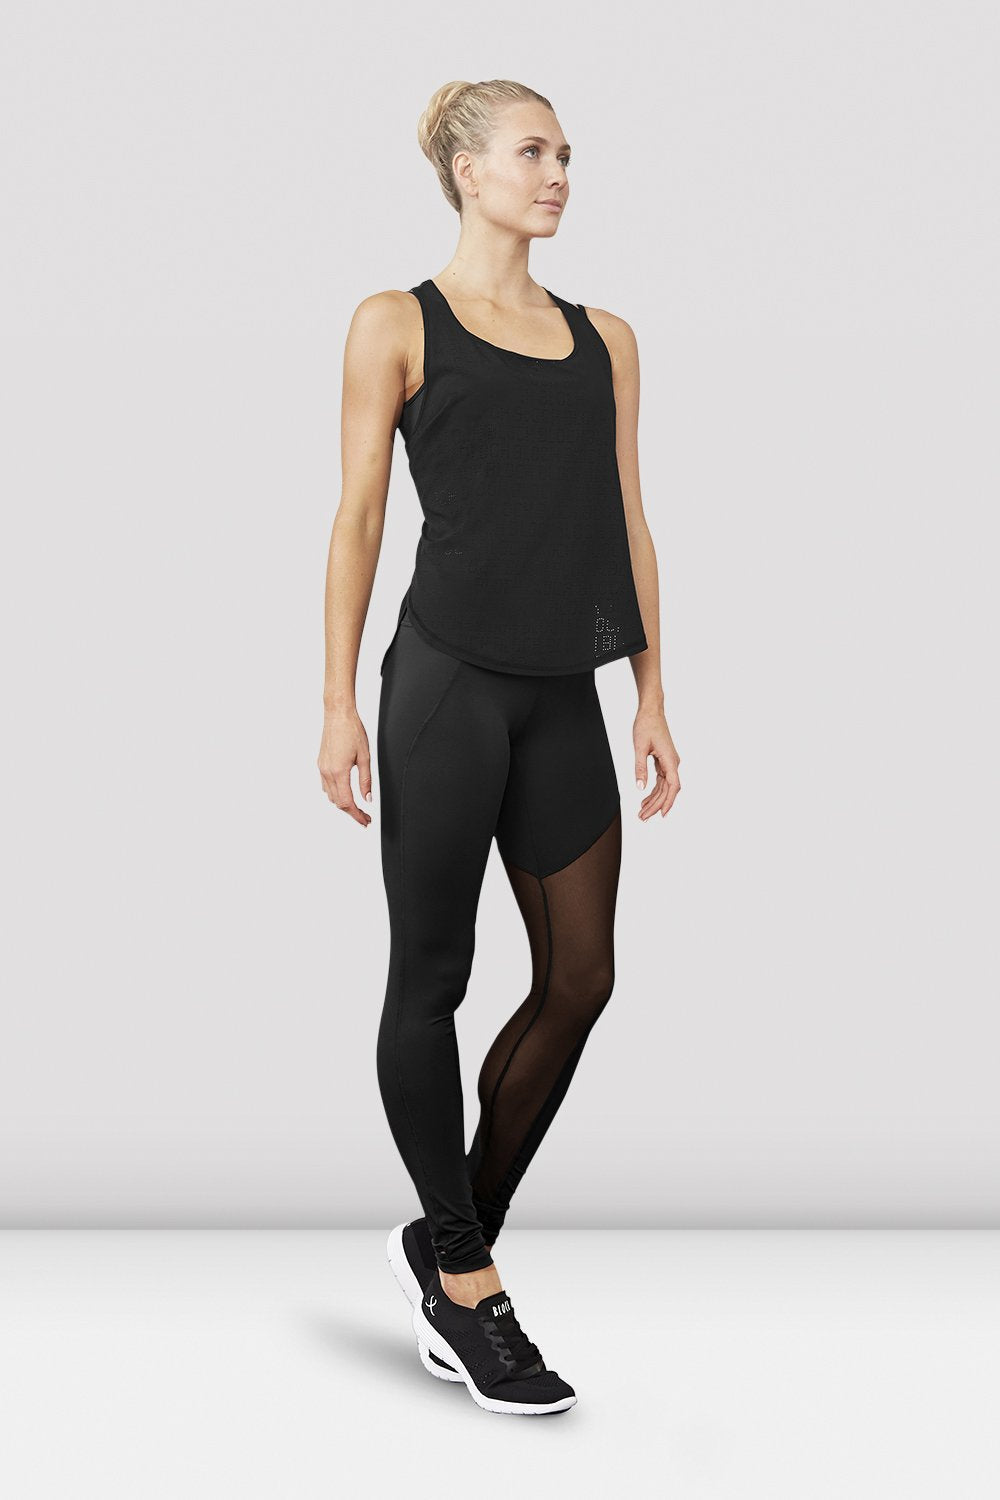 Ladies Jalani Racer Back Tank Top - BLOCH US